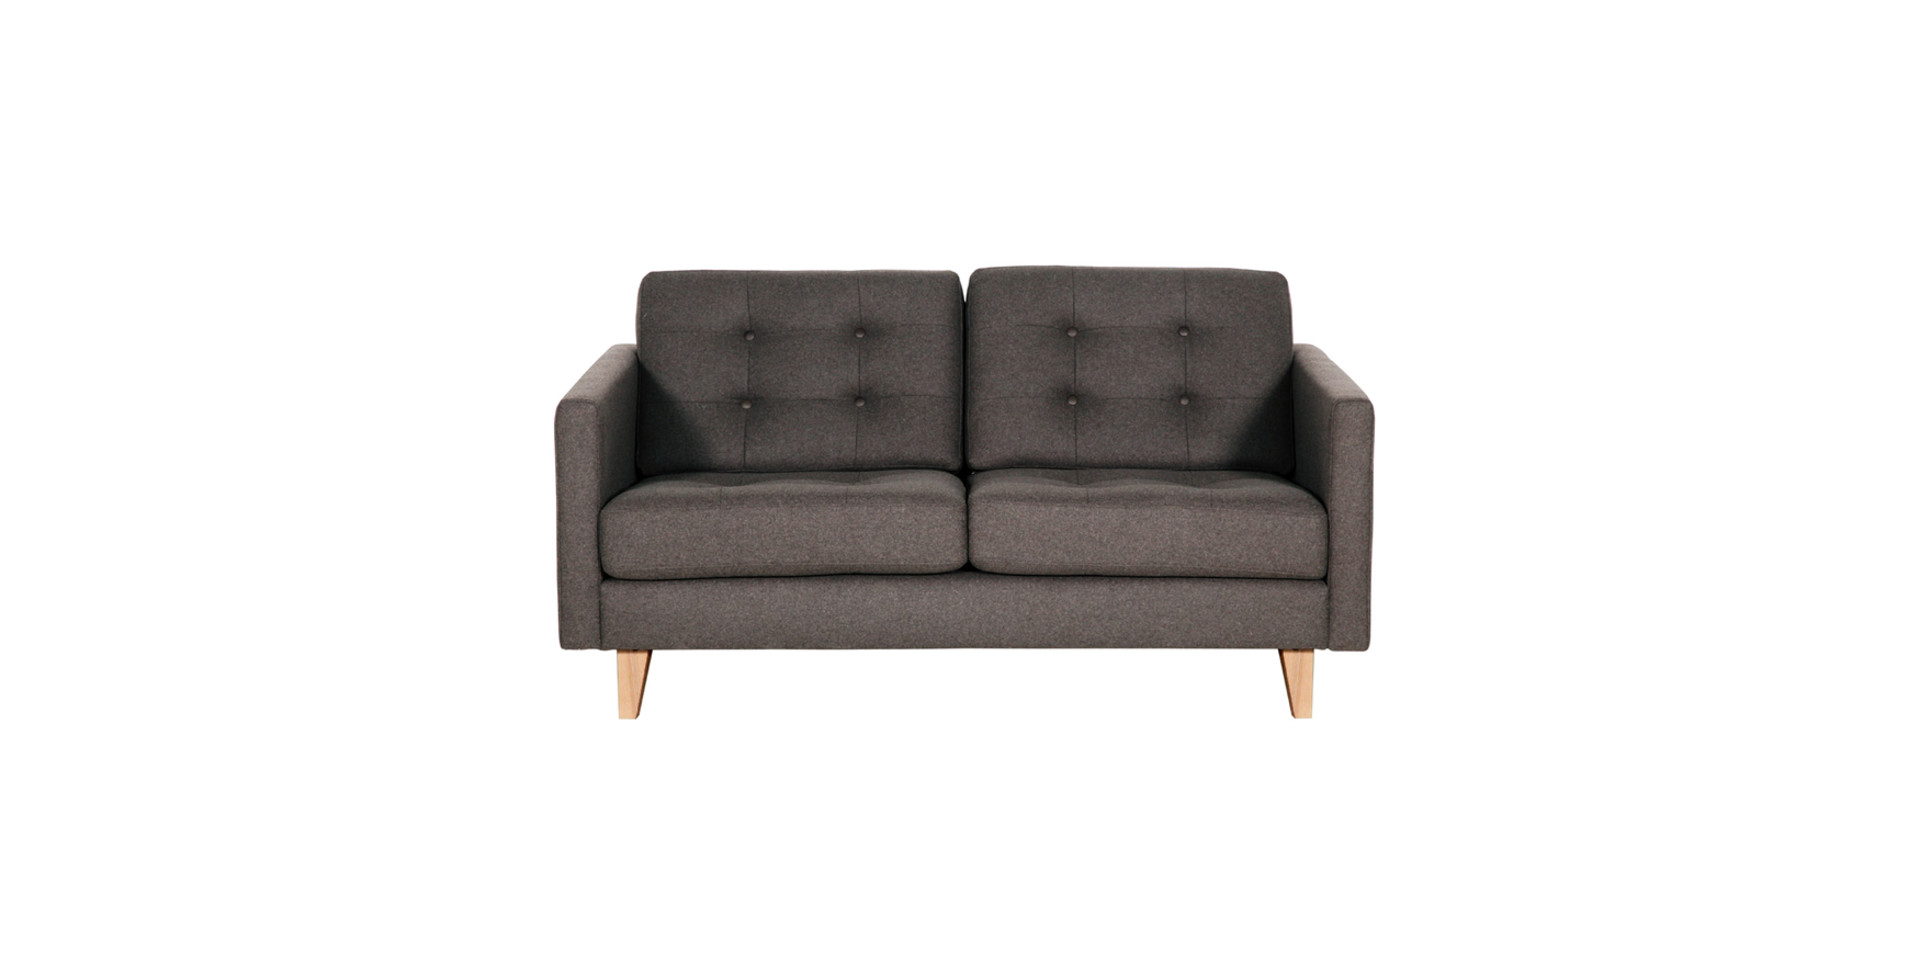 sits-kalle-canape-2seater_panno1008_brown_1